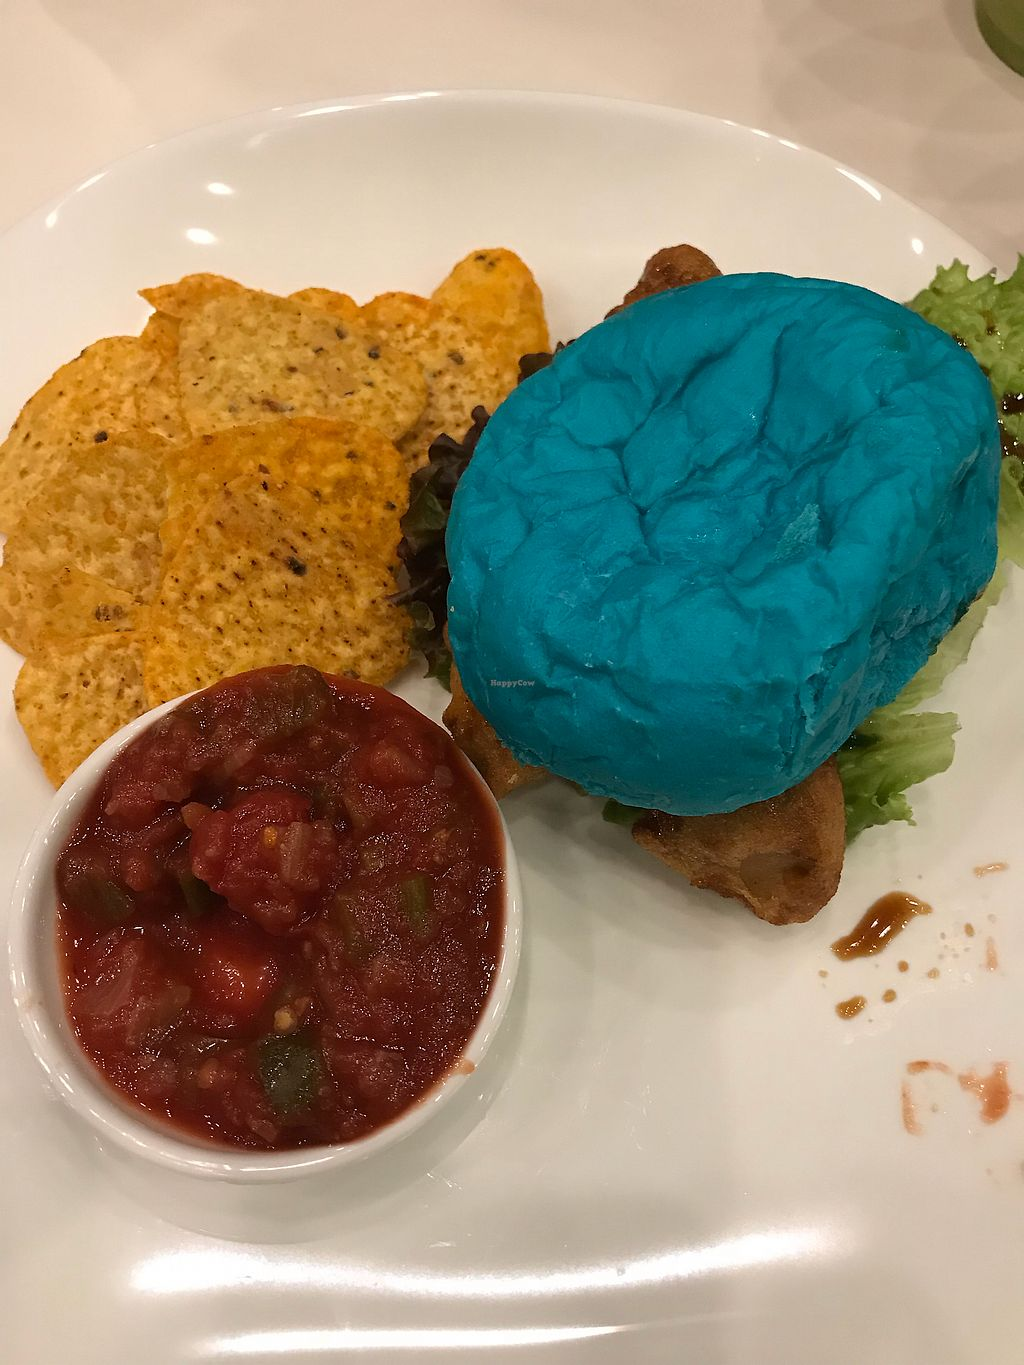 "Photo of Fabius Cafe  by <a href=""/members/profile/JoannaWatts"">JoannaWatts</a> <br/>Soy nugget burger in a blue bun! <br/> April 21, 2018  - <a href='/contact/abuse/image/115069/388977'>Report</a>"